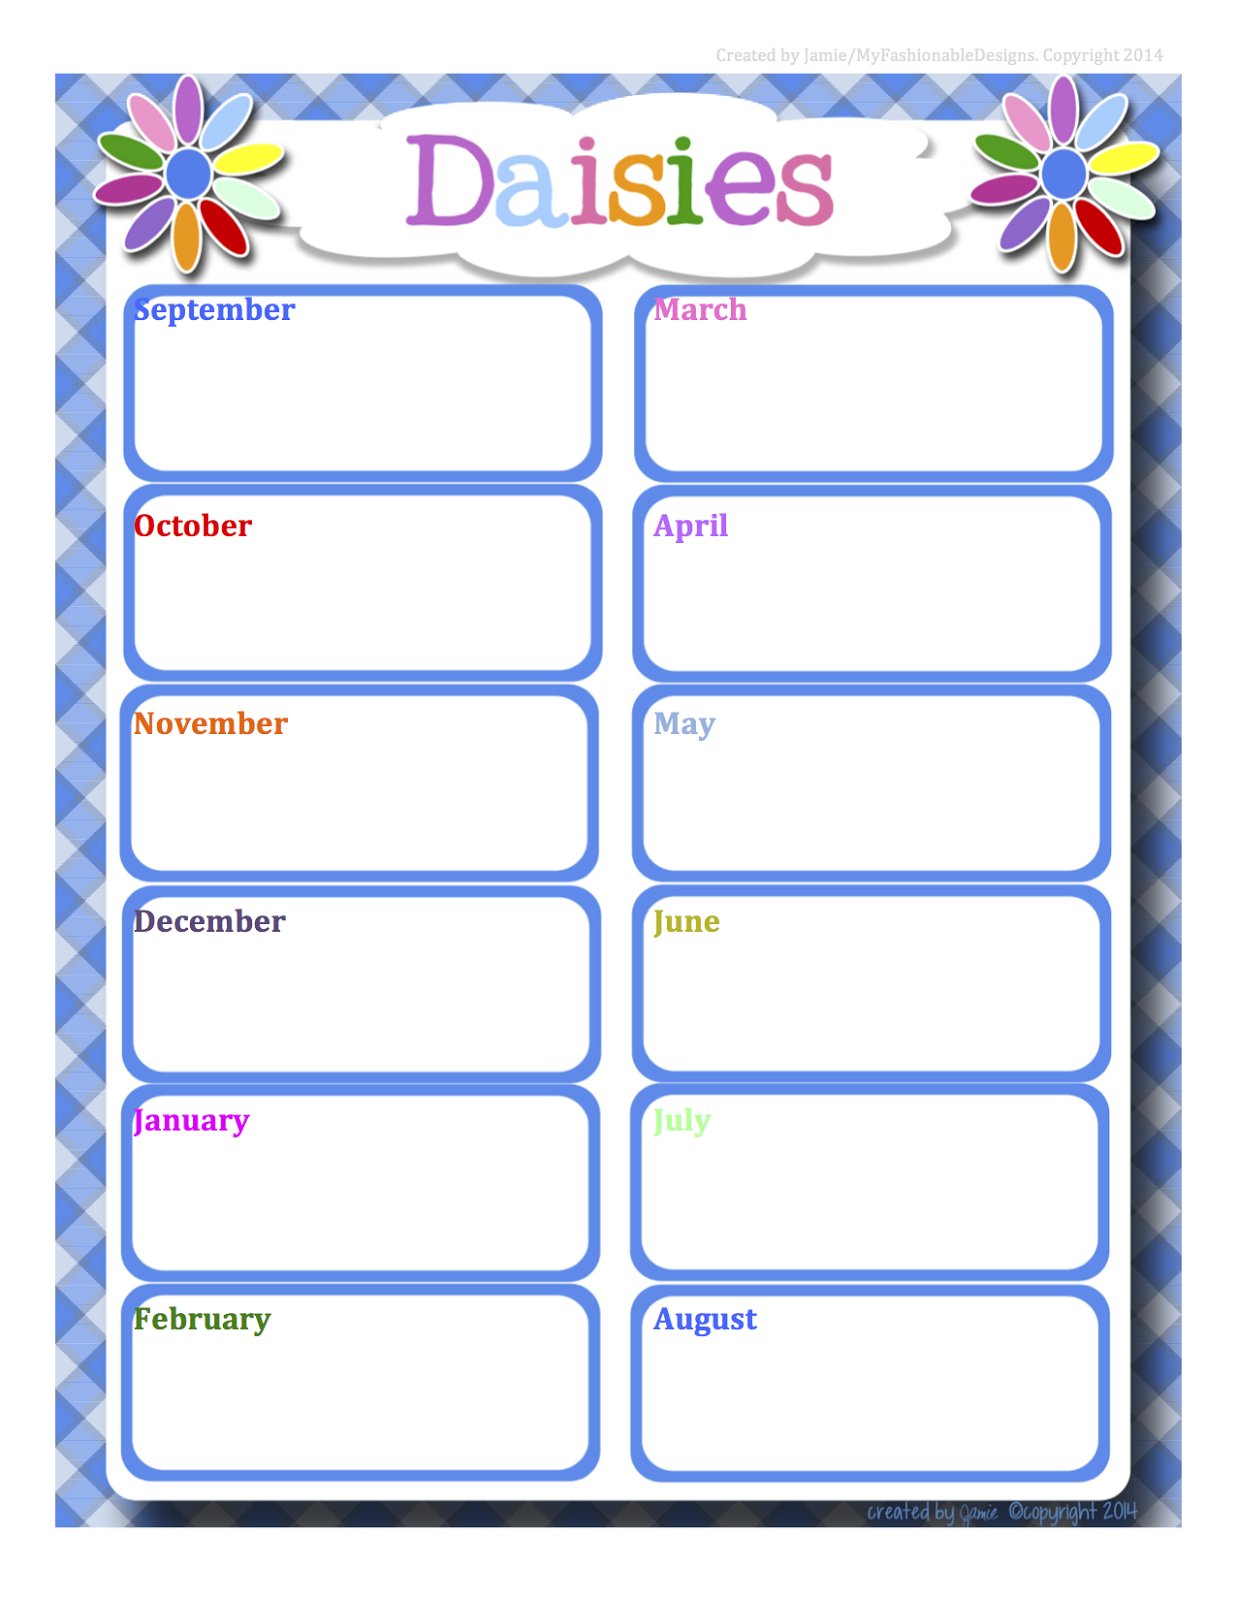 My Fashionable Designs Girl Scouts Daisies Calendar